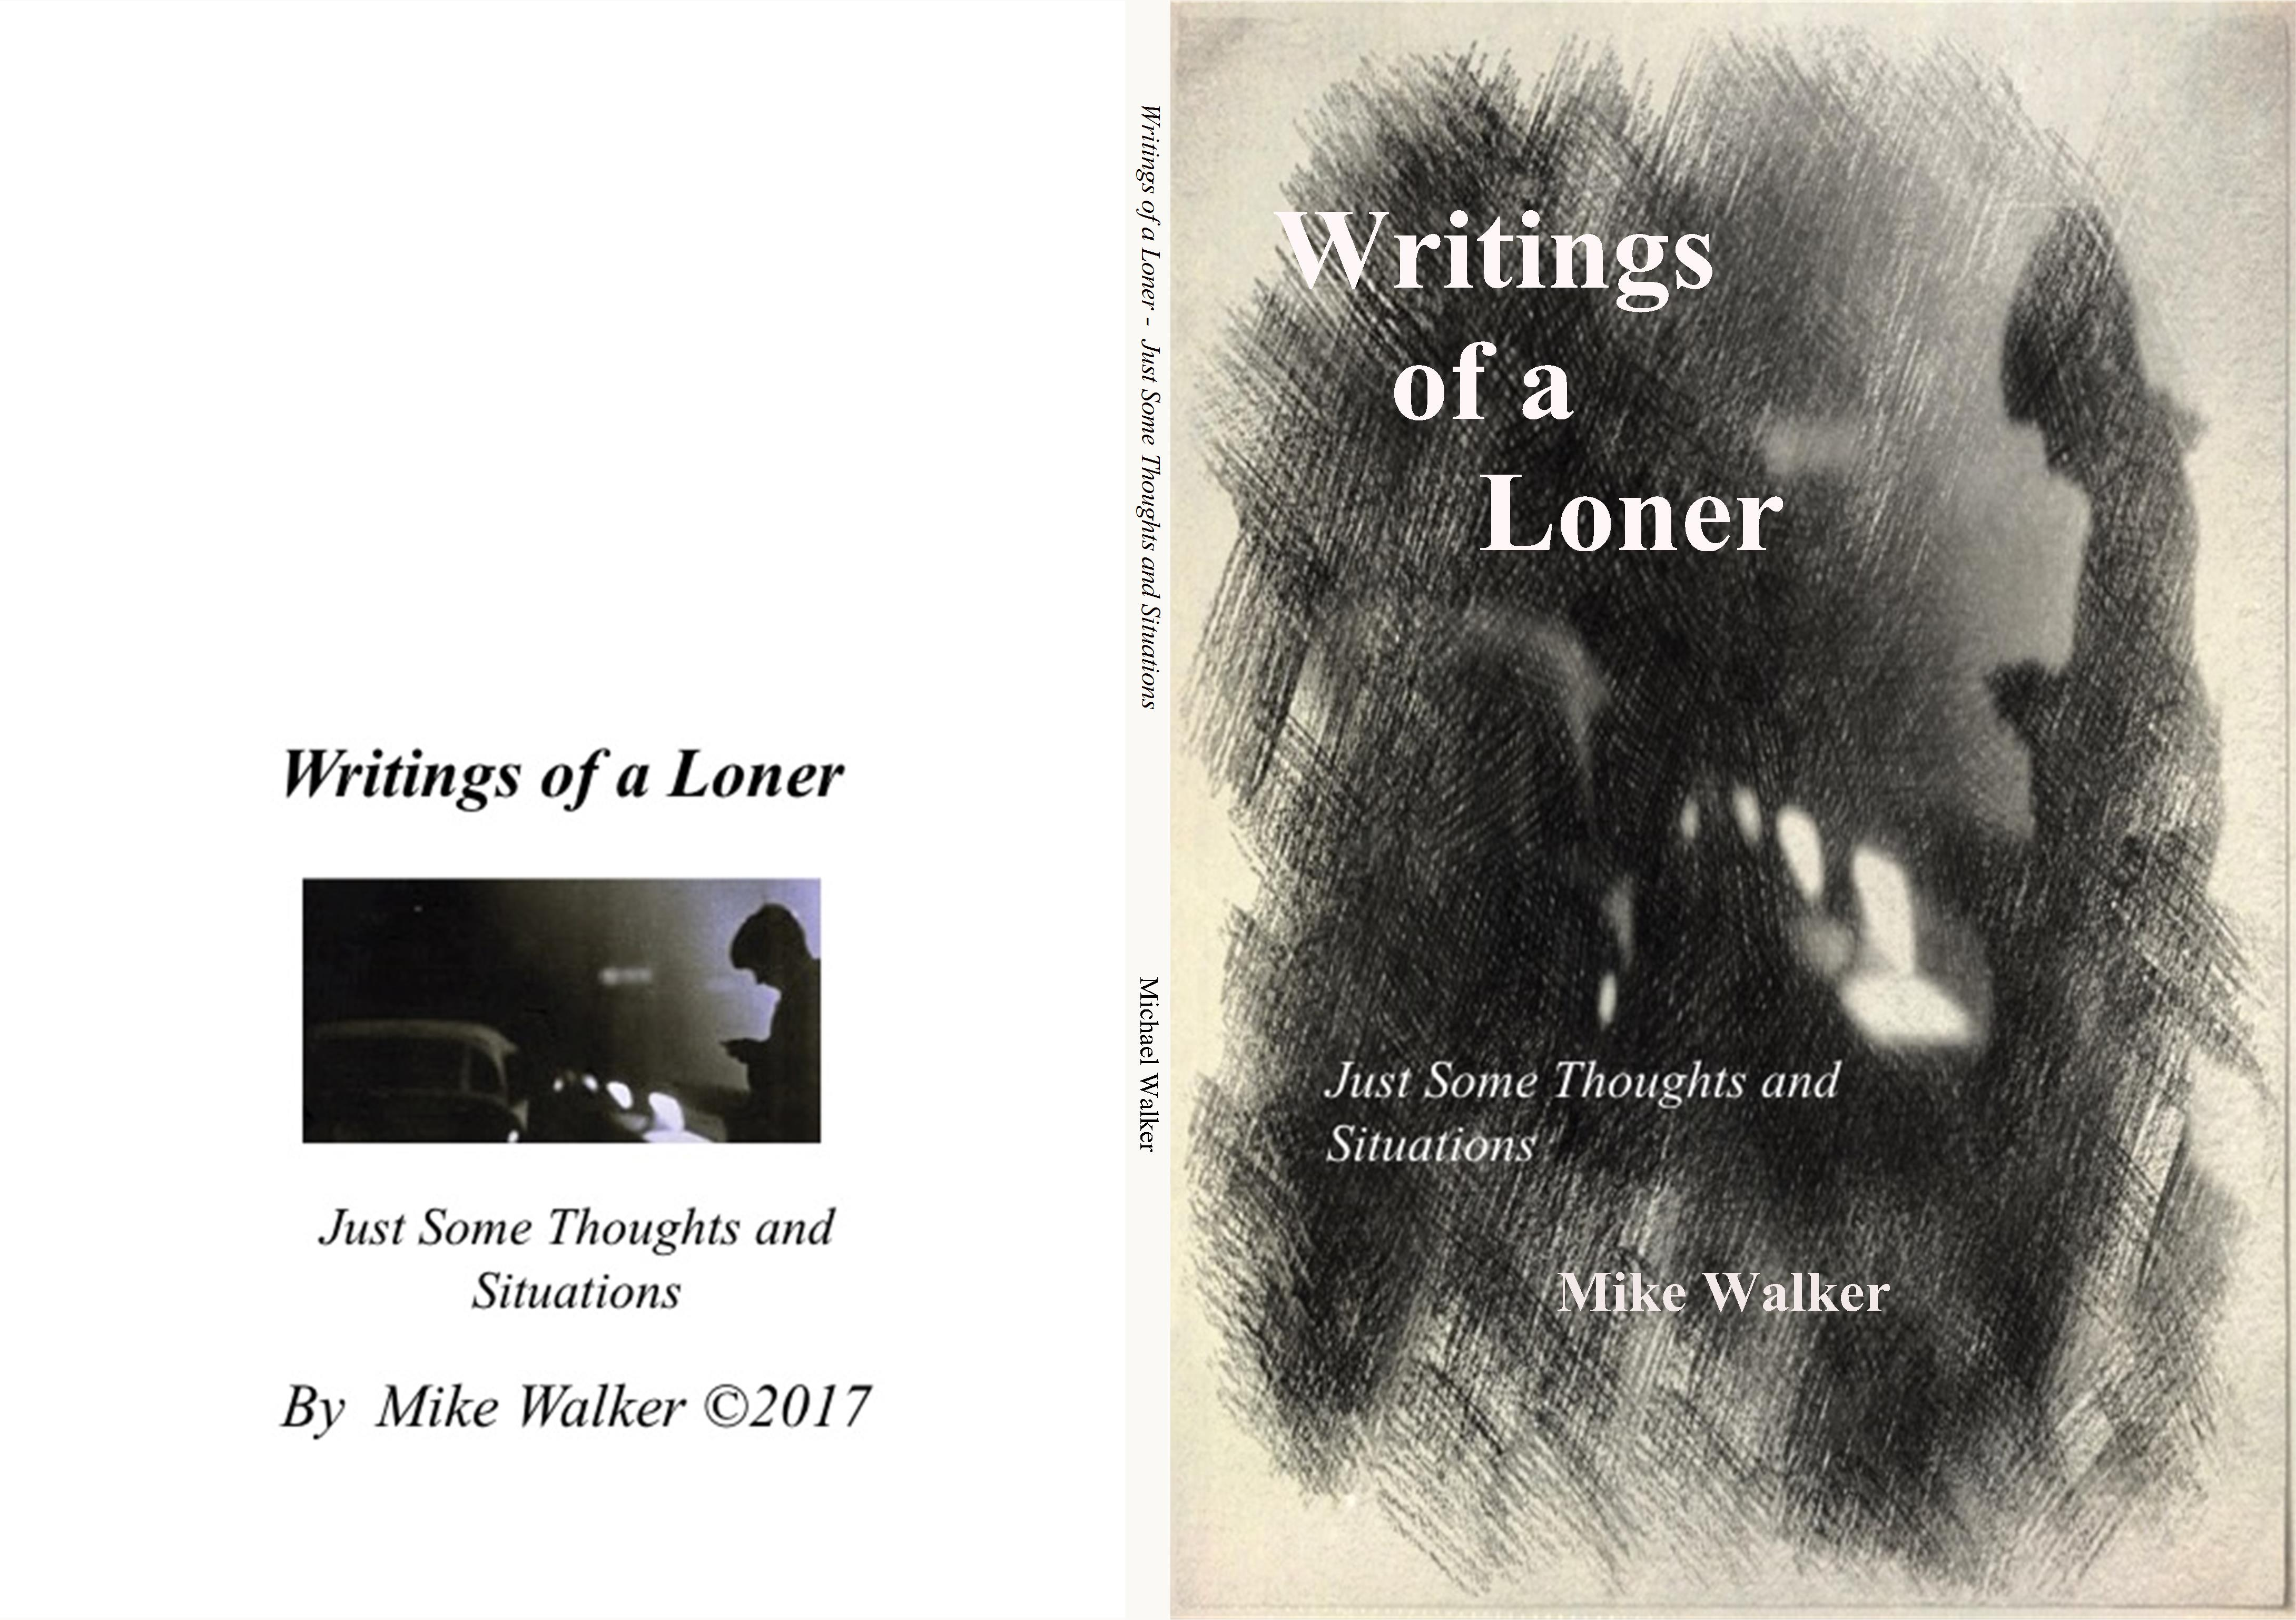 Writings of a Loner cover image